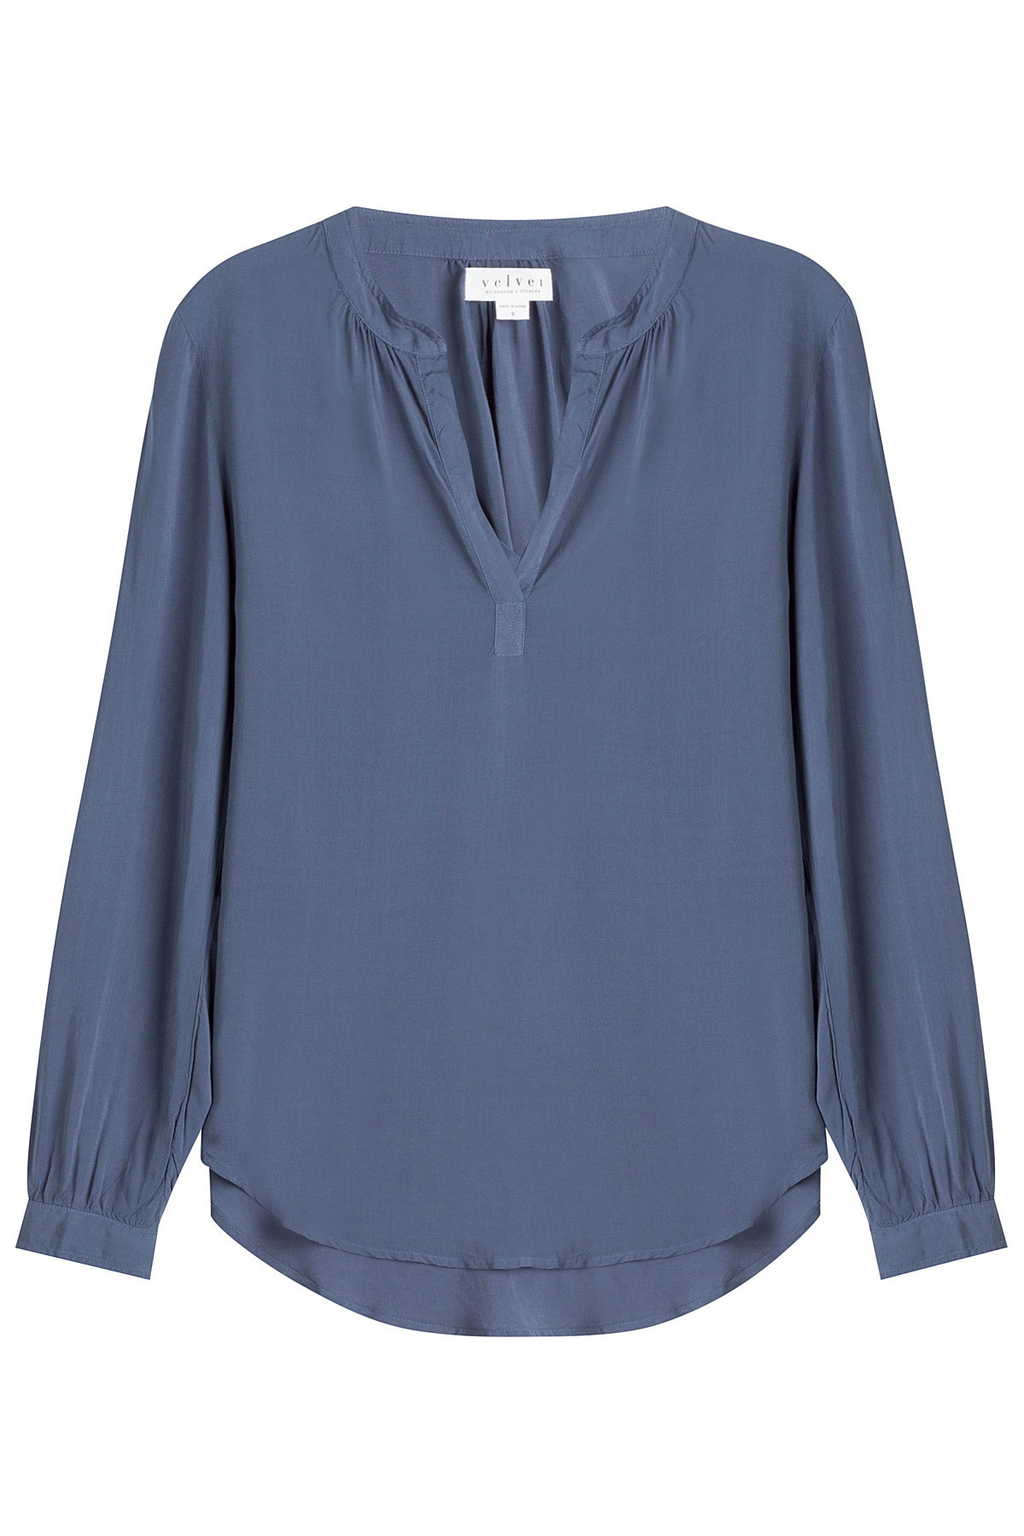 Tunic Blouse - pattern: plain; style: blouse; predominant colour: denim; occasions: casual; length: standard; neckline: collarstand & mandarin with v-neck; fibres: viscose/rayon - 100%; fit: loose; sleeve length: long sleeve; sleeve style: standard; texture group: sheer fabrics/chiffon/organza etc.; pattern type: fabric; season: a/w 2016; wardrobe: highlight